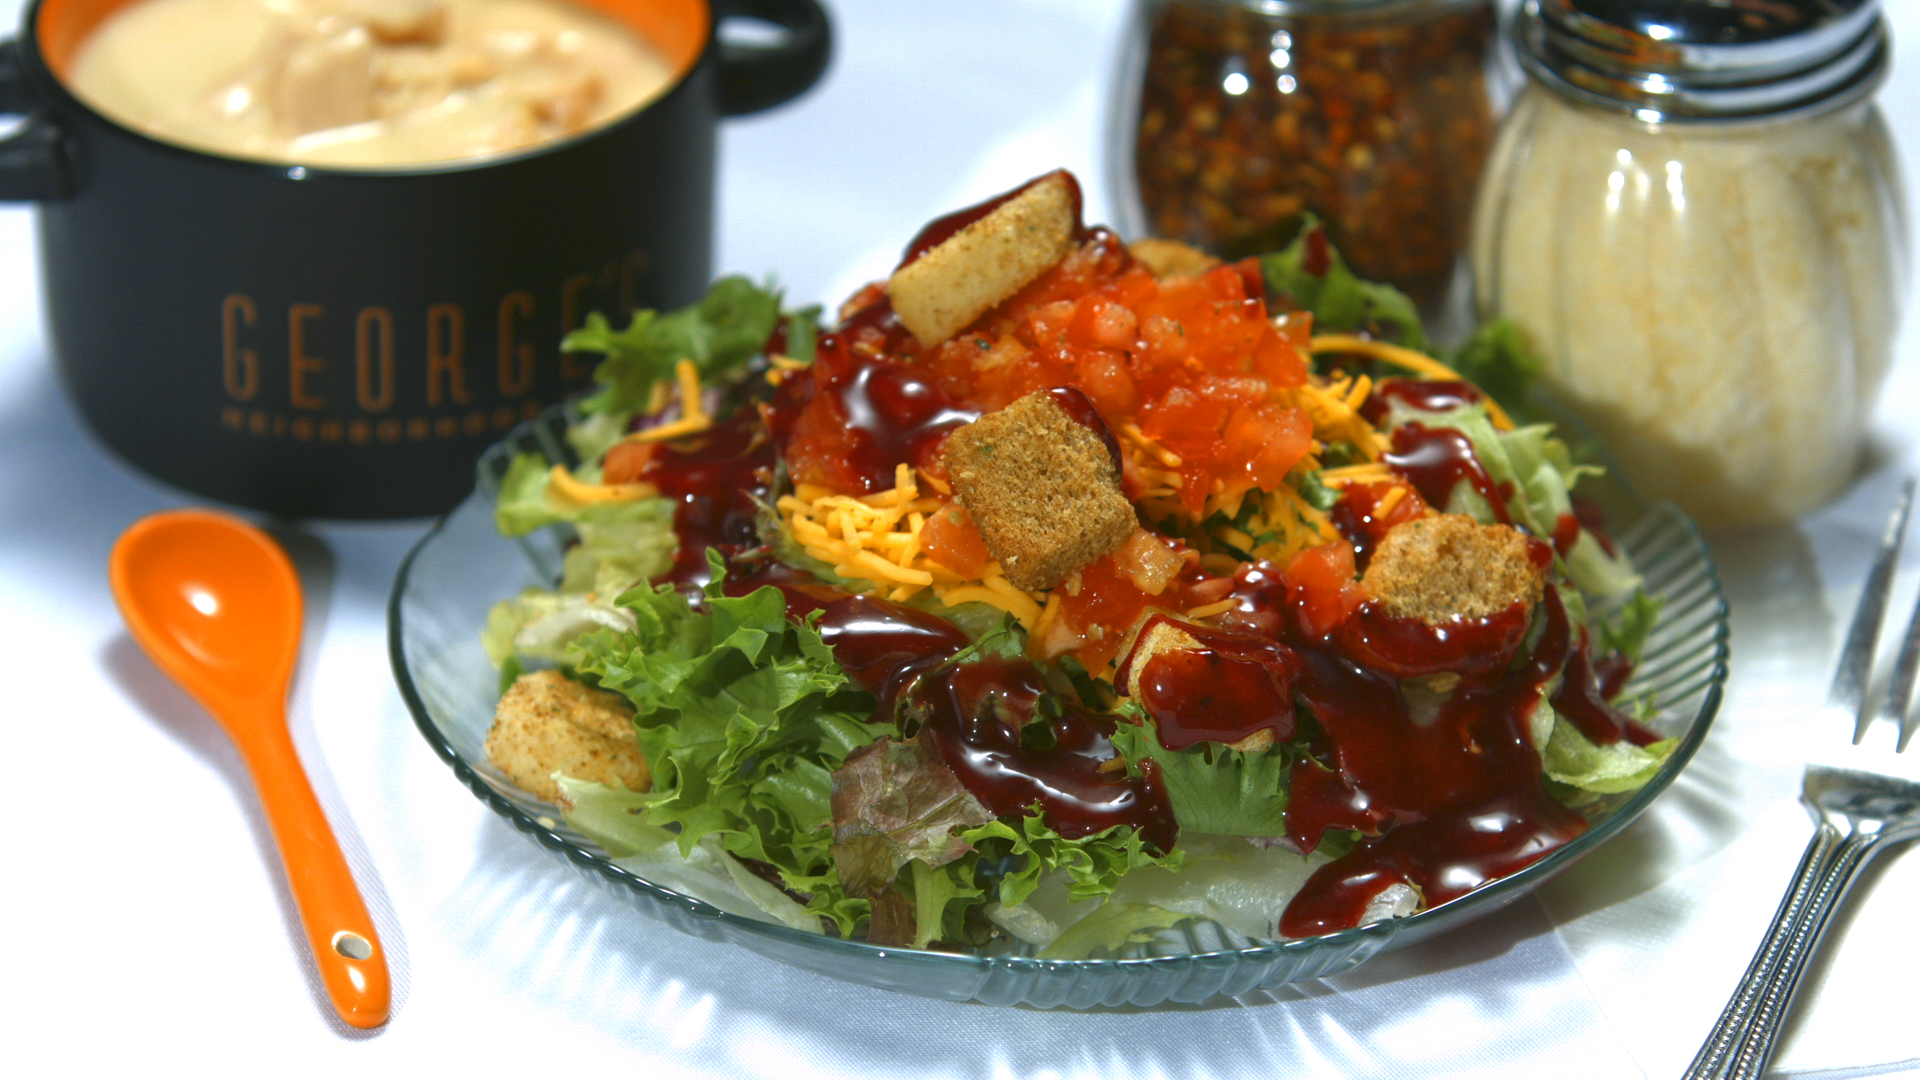 Salad with cheese, croutons and chopped tomato with a dressing on top